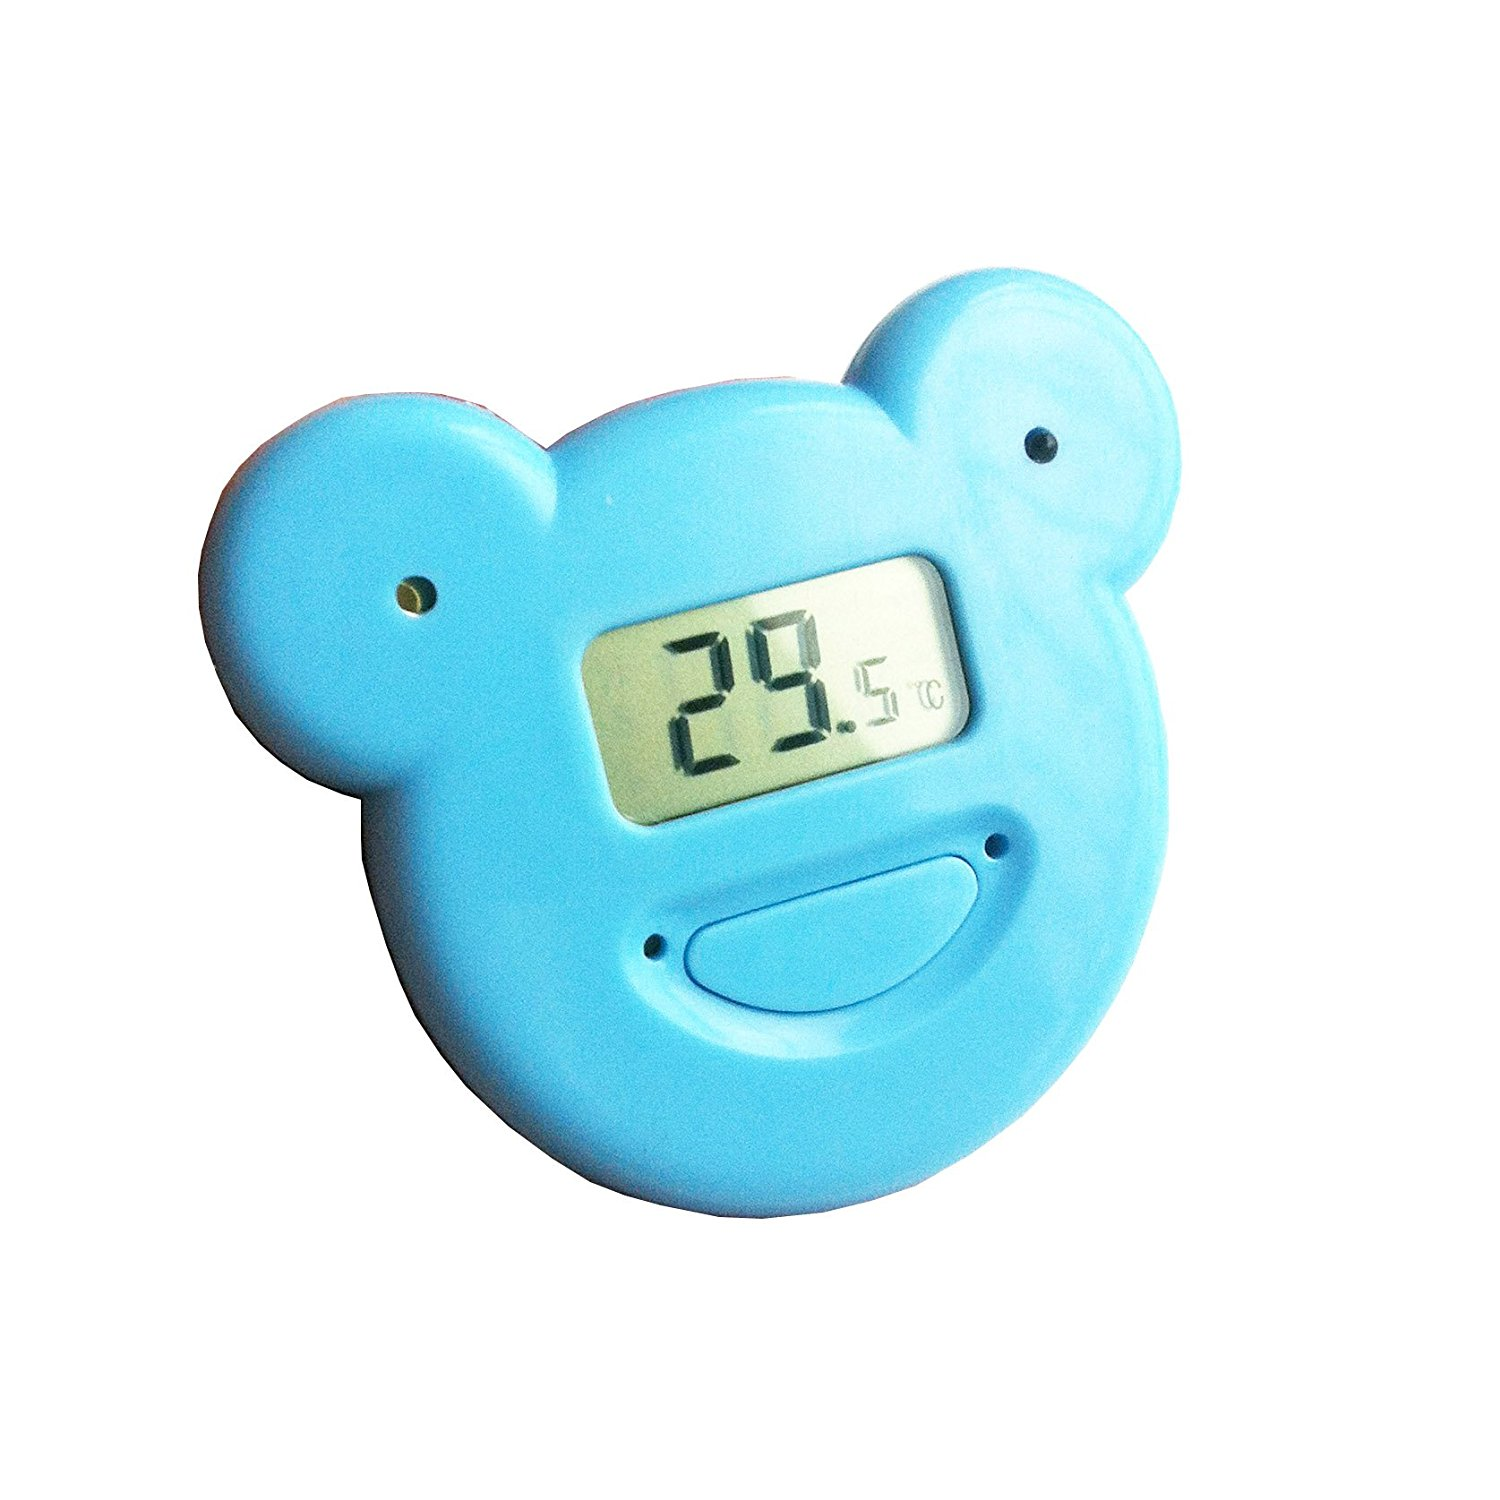 Julyfox Baby Bed Temperature Sleeping Monitor For Anti Kicking Quilt Favor Monitor Blue